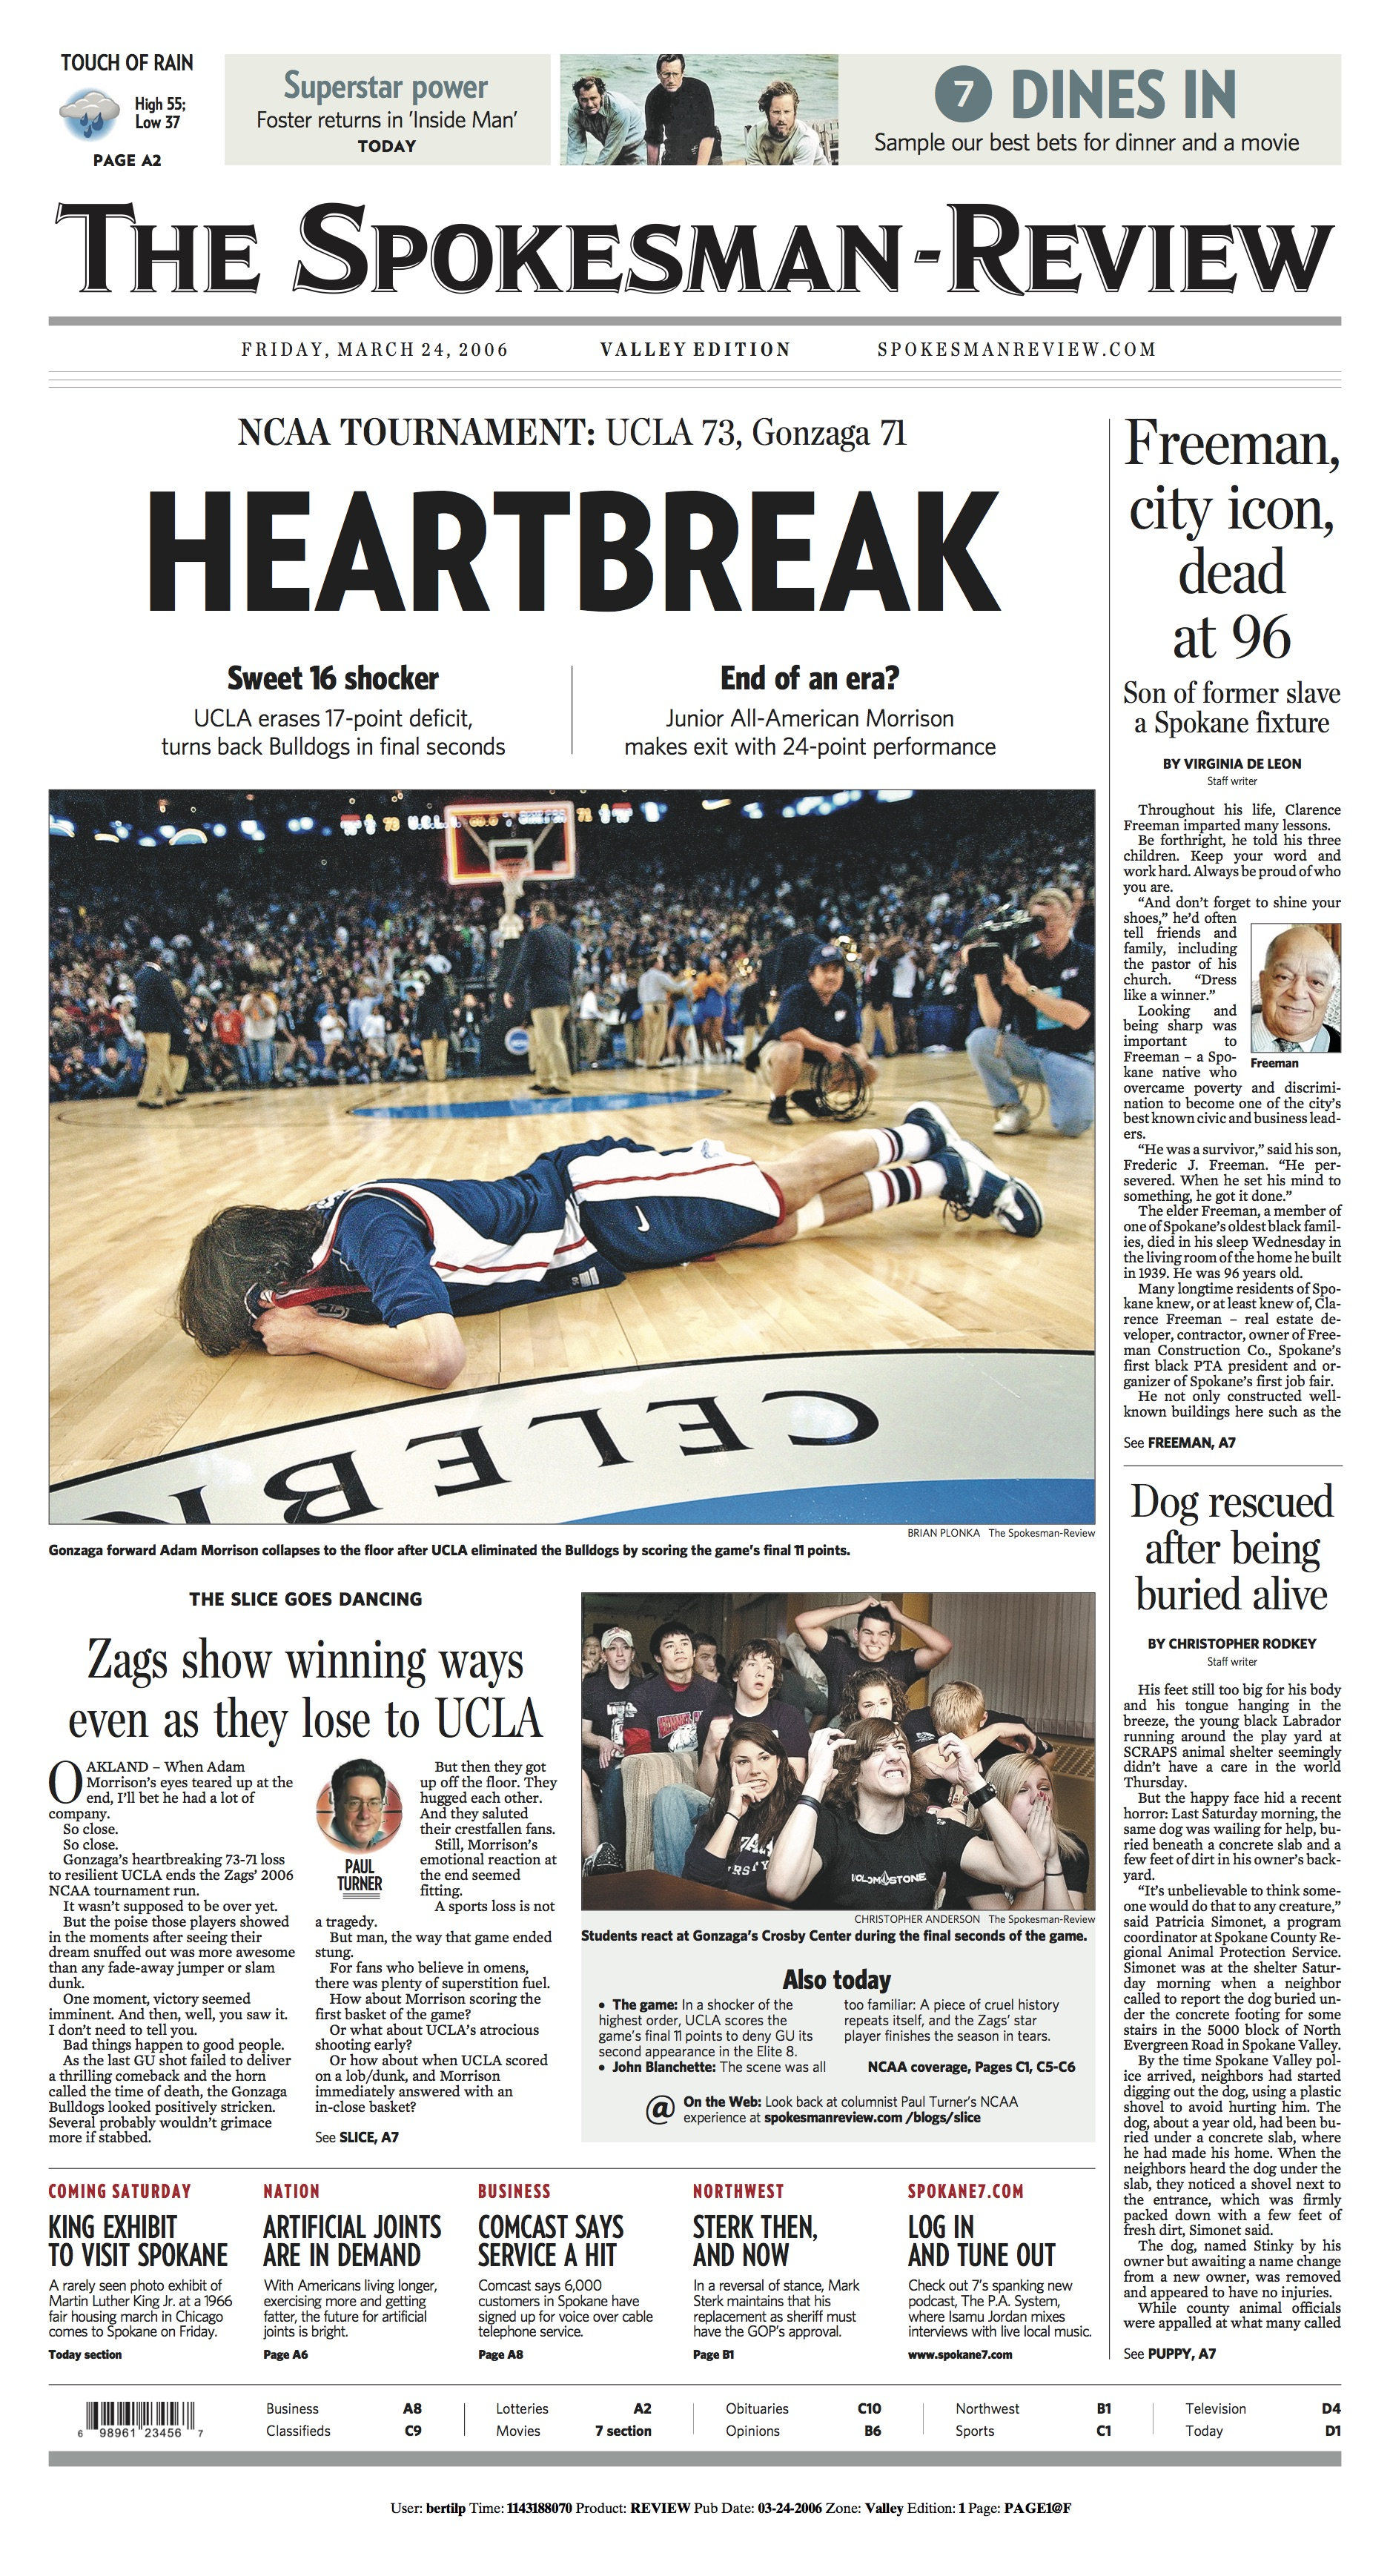 Historic page: Mar. 23, 2006